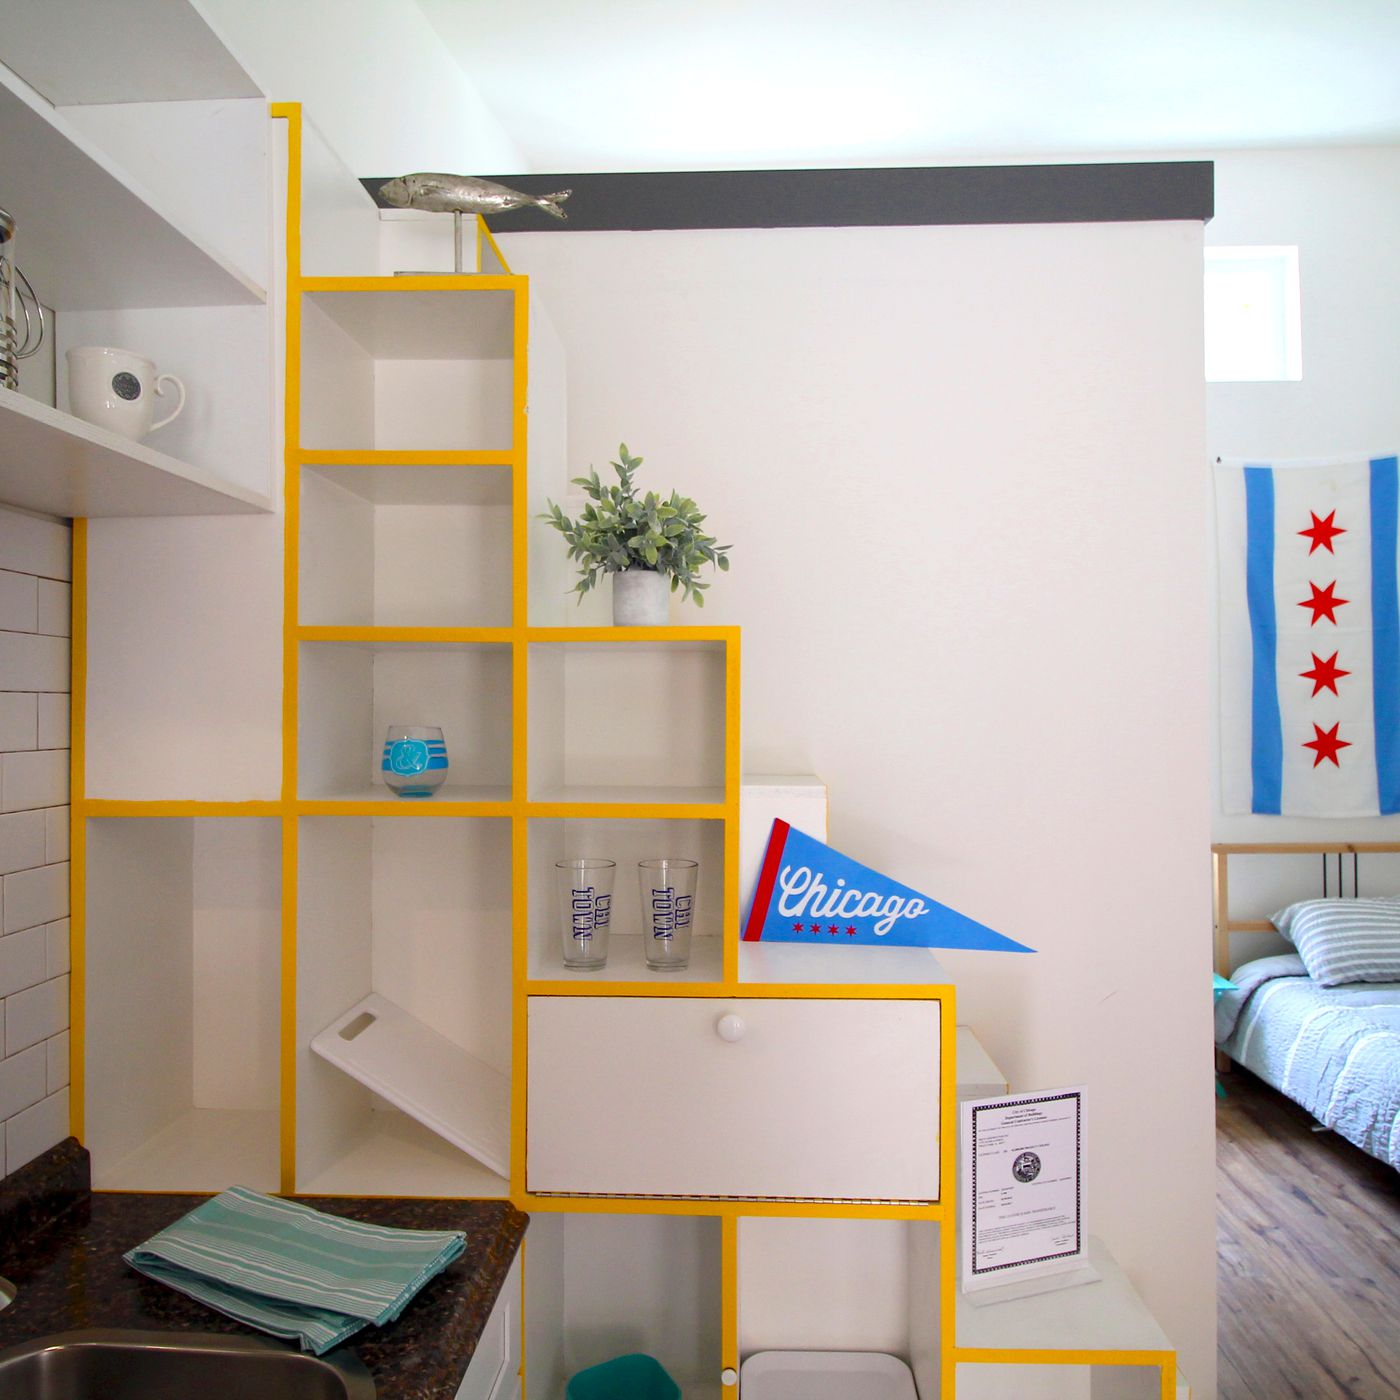 How tiny houses can help serve Chicago's homeless youth